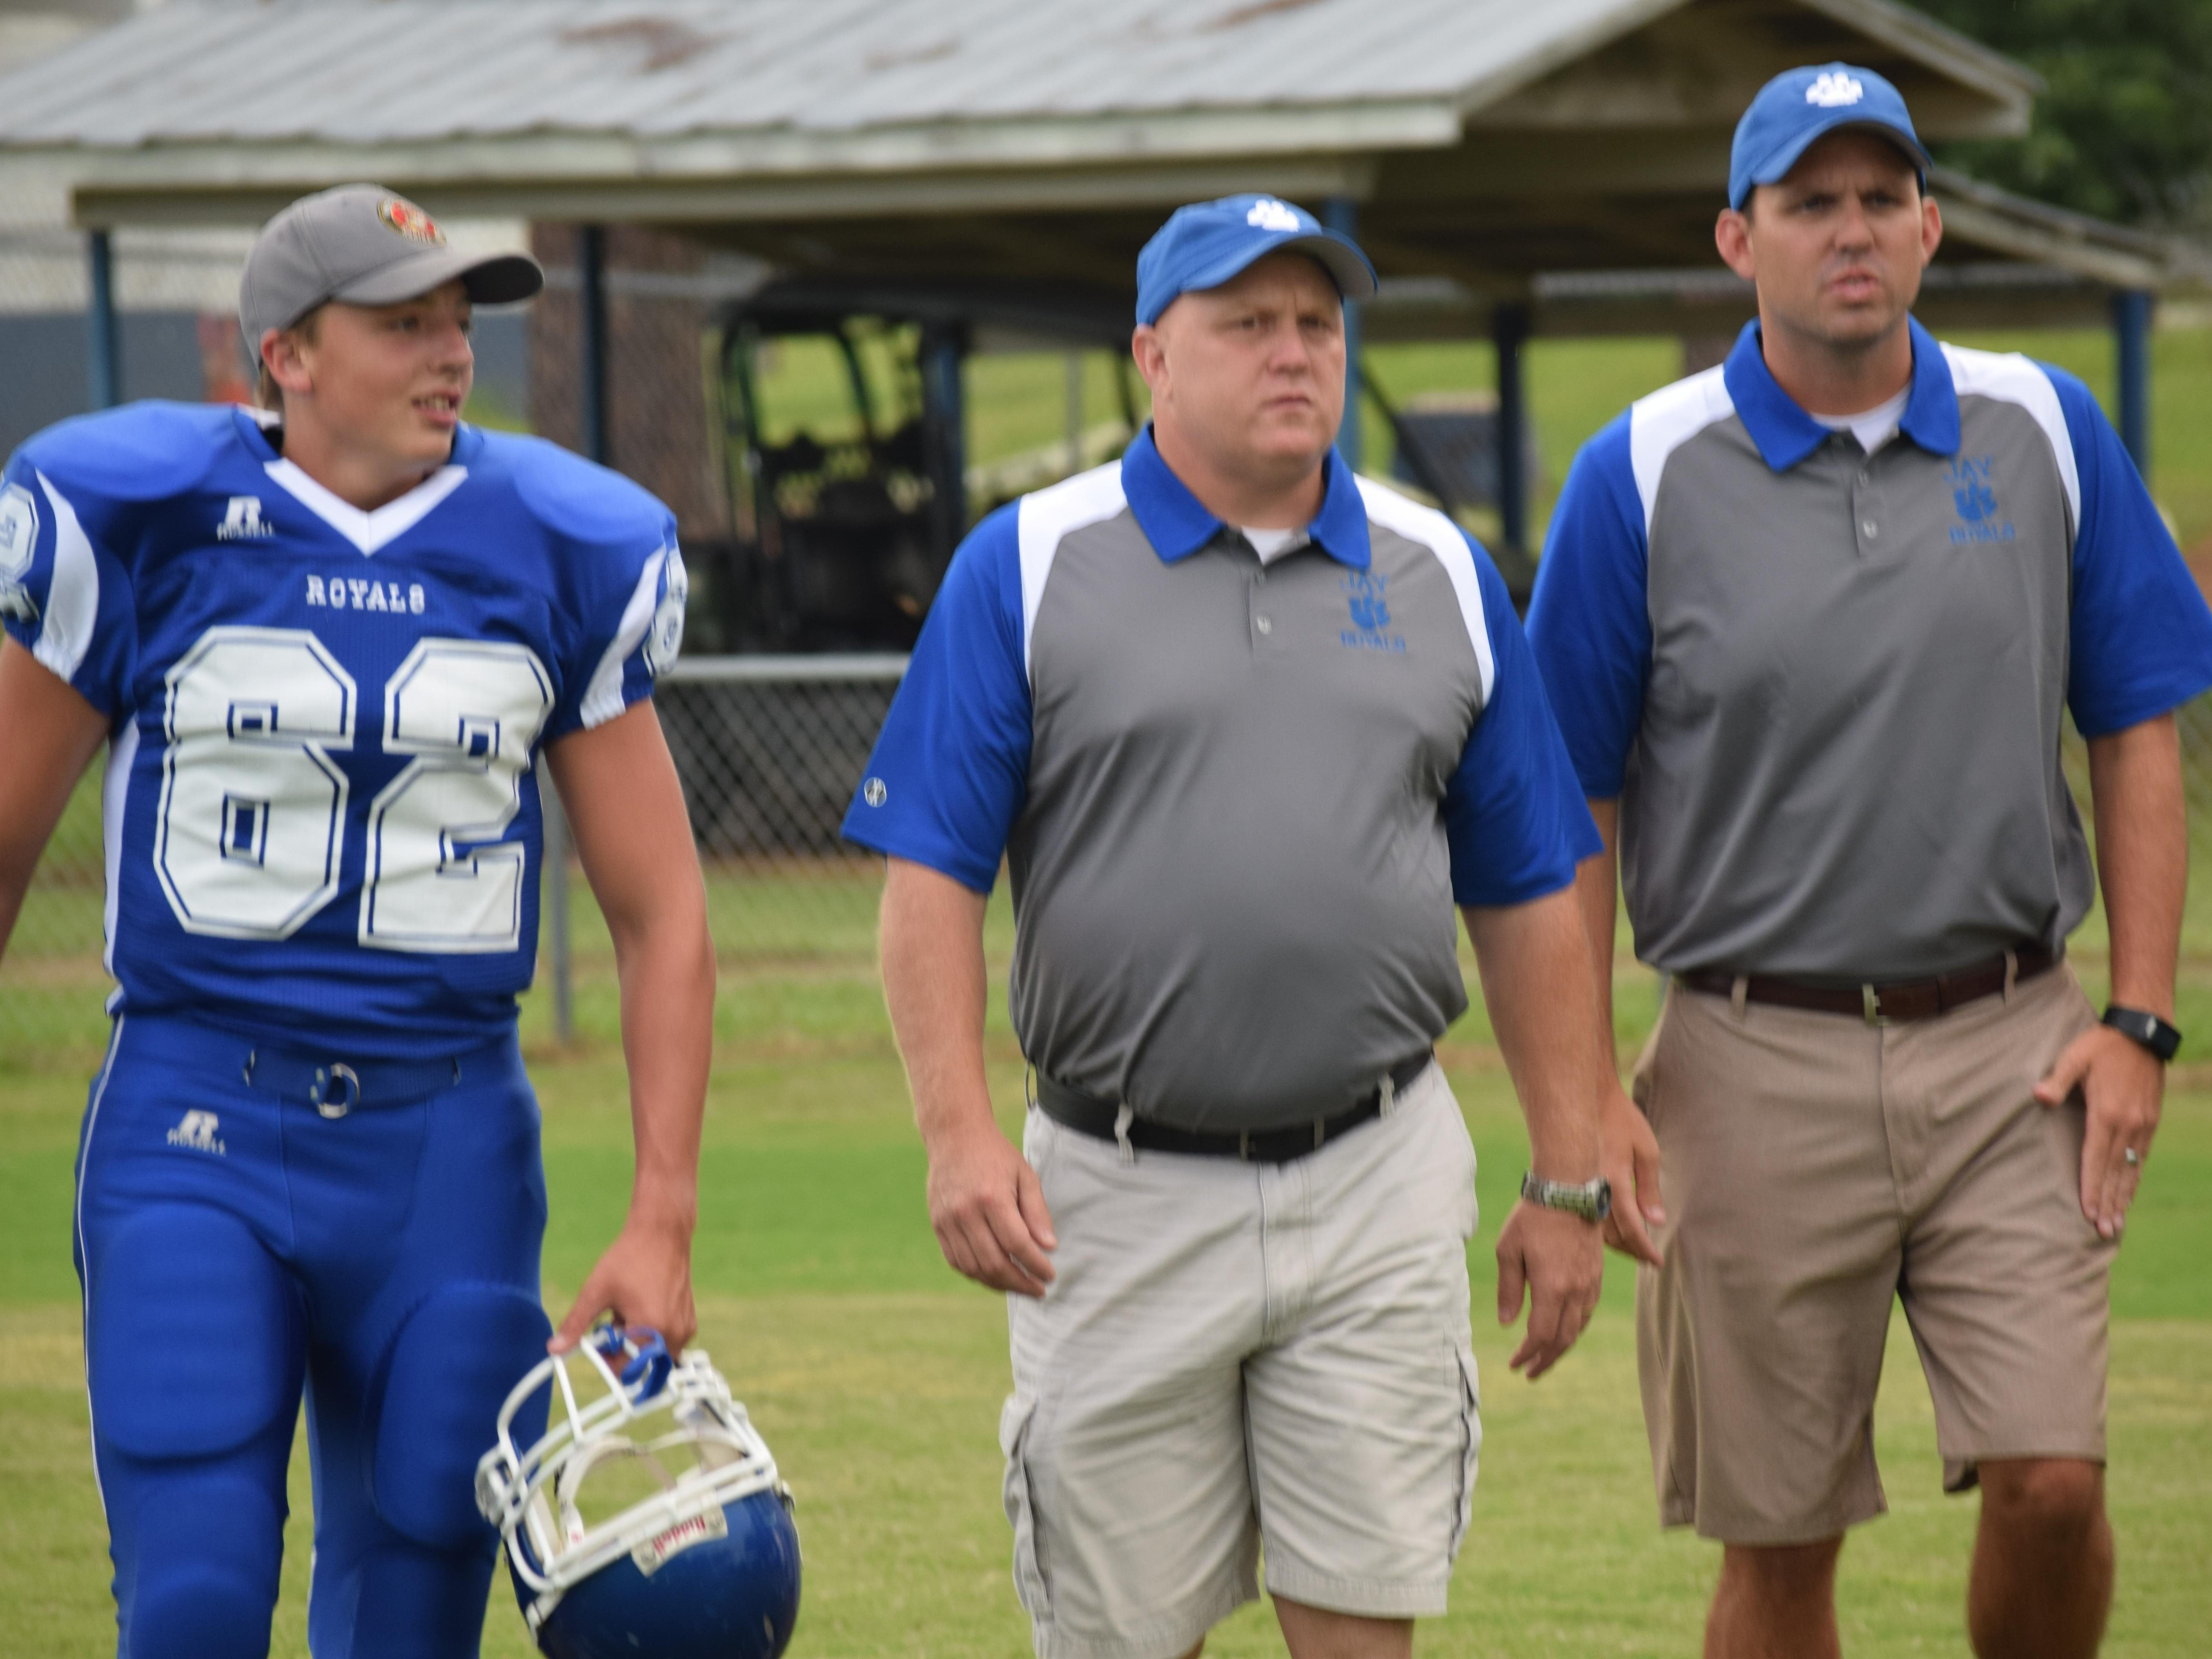 Jay head coach Melvin Kersey (center) and Brian Watson (right) were teammates on Jay football teams in the early 1990's. They head to field during team's photo day with Landon Smith